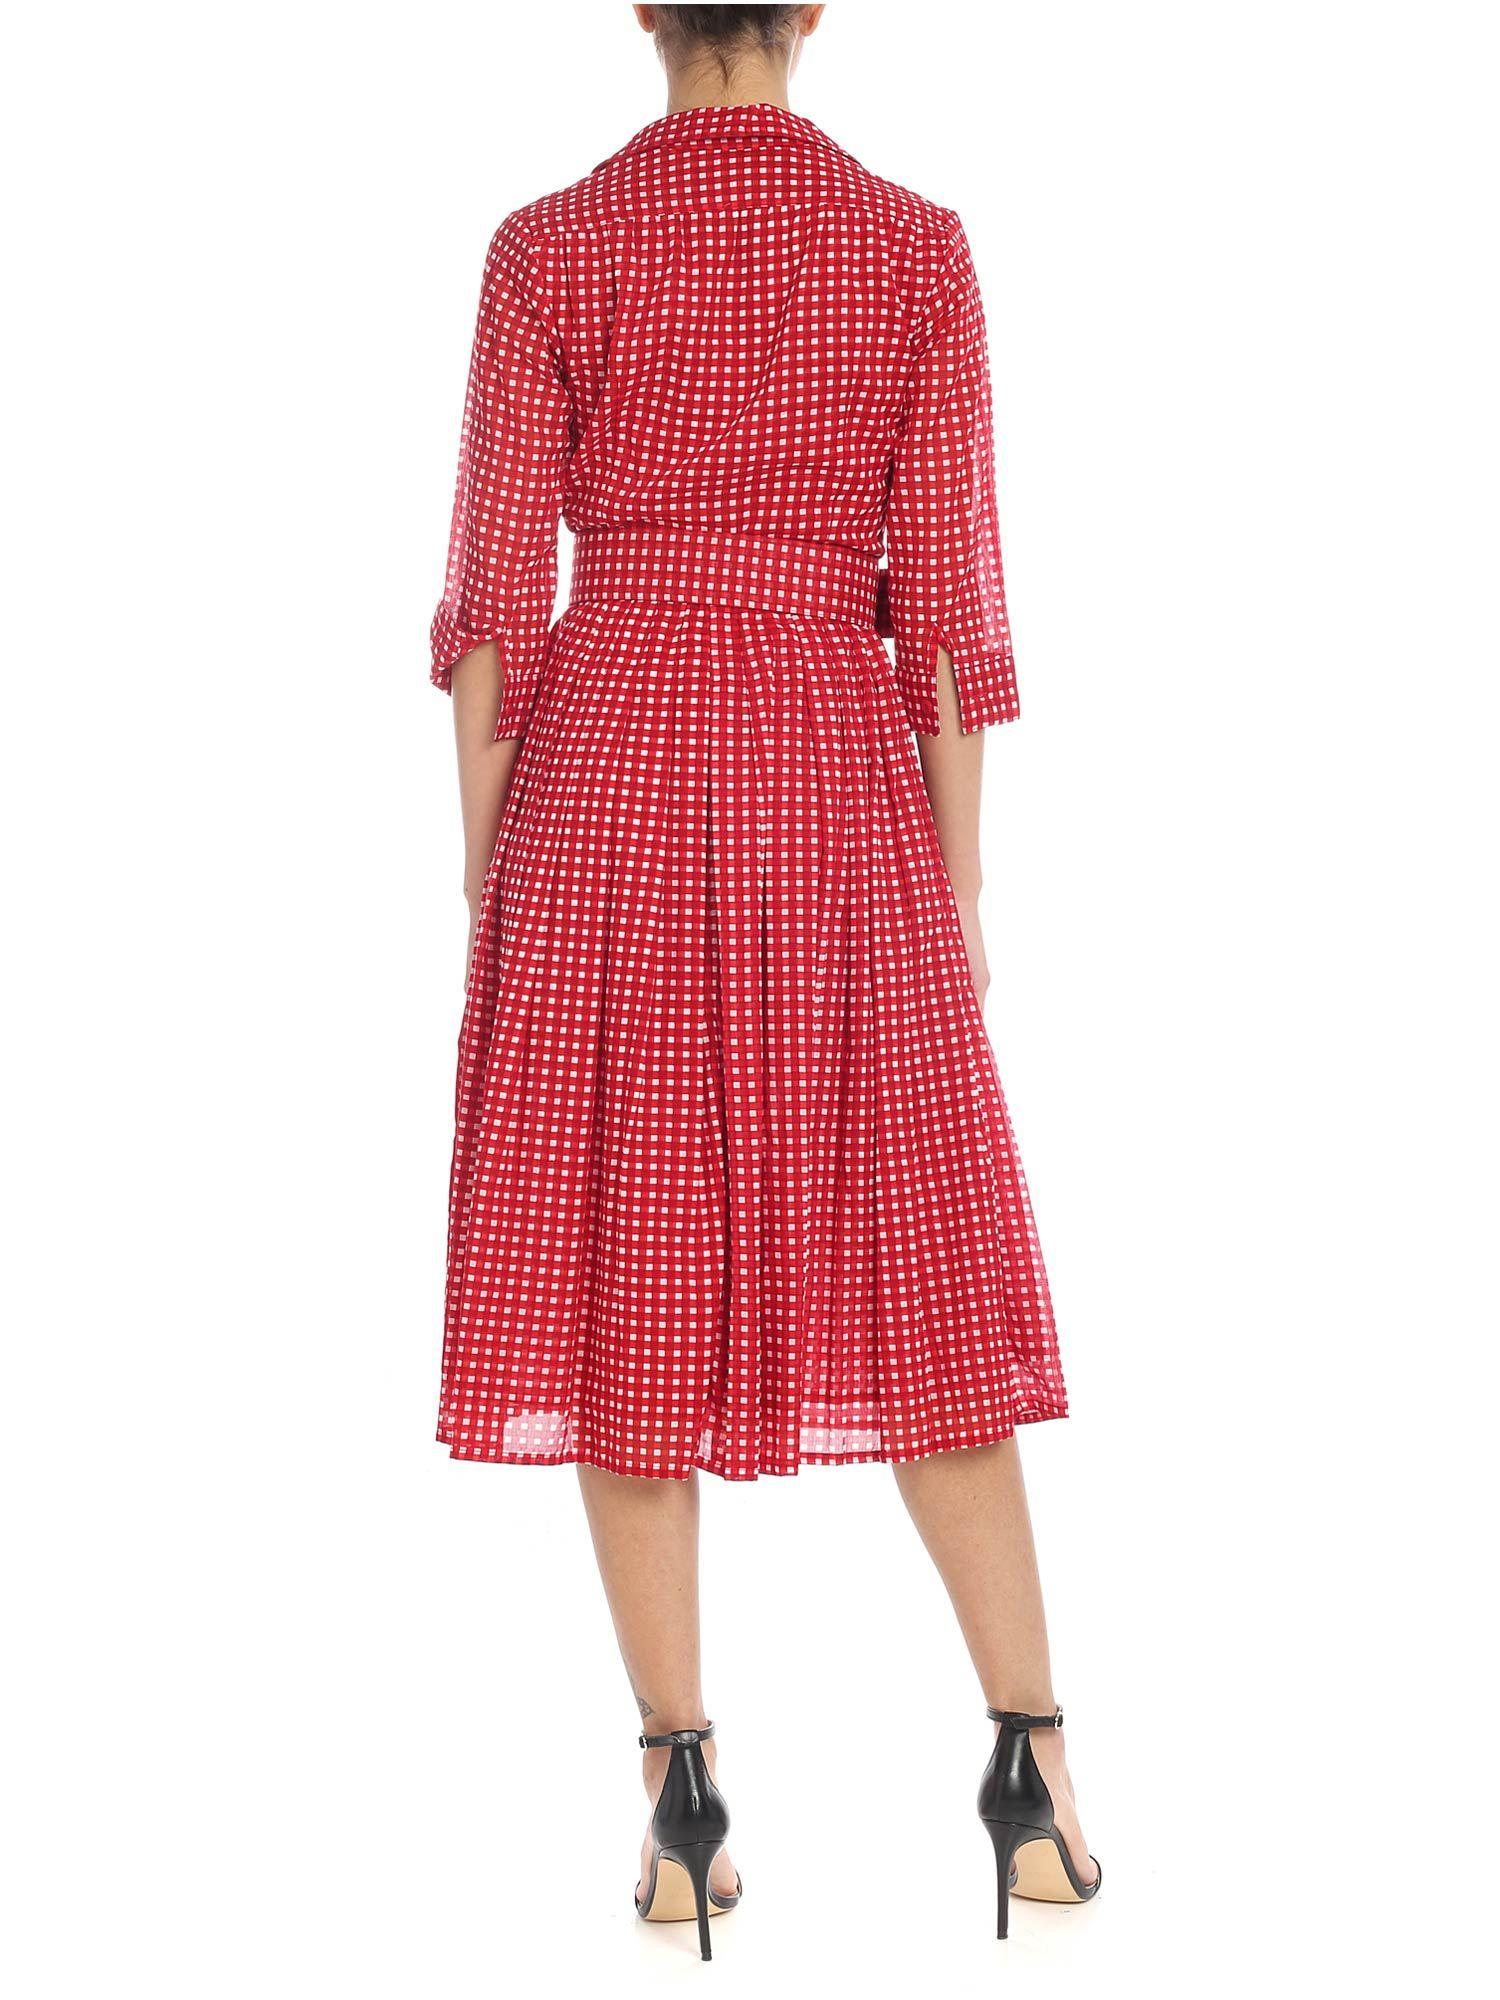 Vichy Red With White And Sung Print Audrey In Chemisier Samantha 92IHED